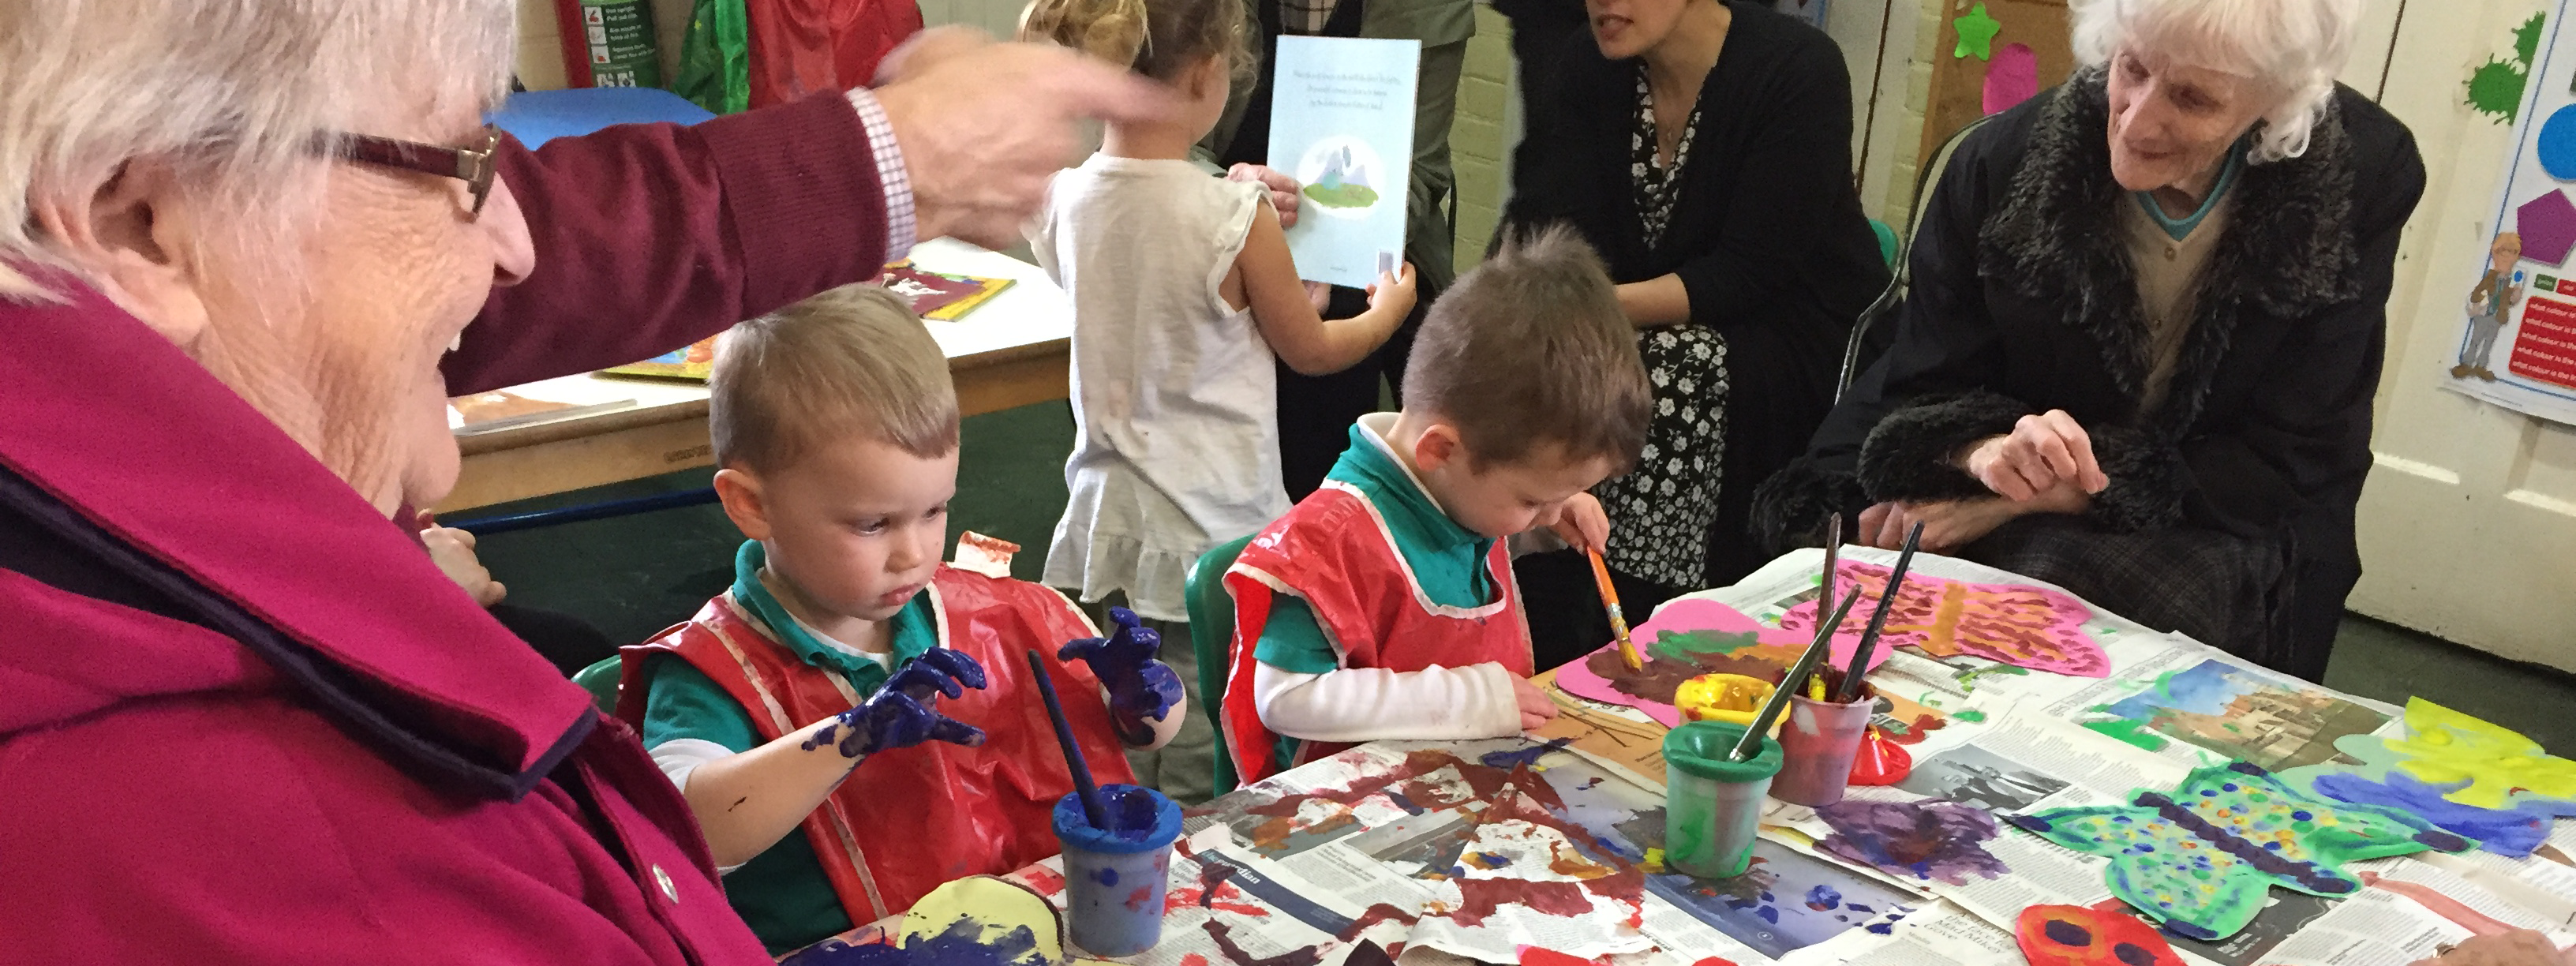 Forest Row Community Pre-School enjoying activities with their local elderly Thursday club